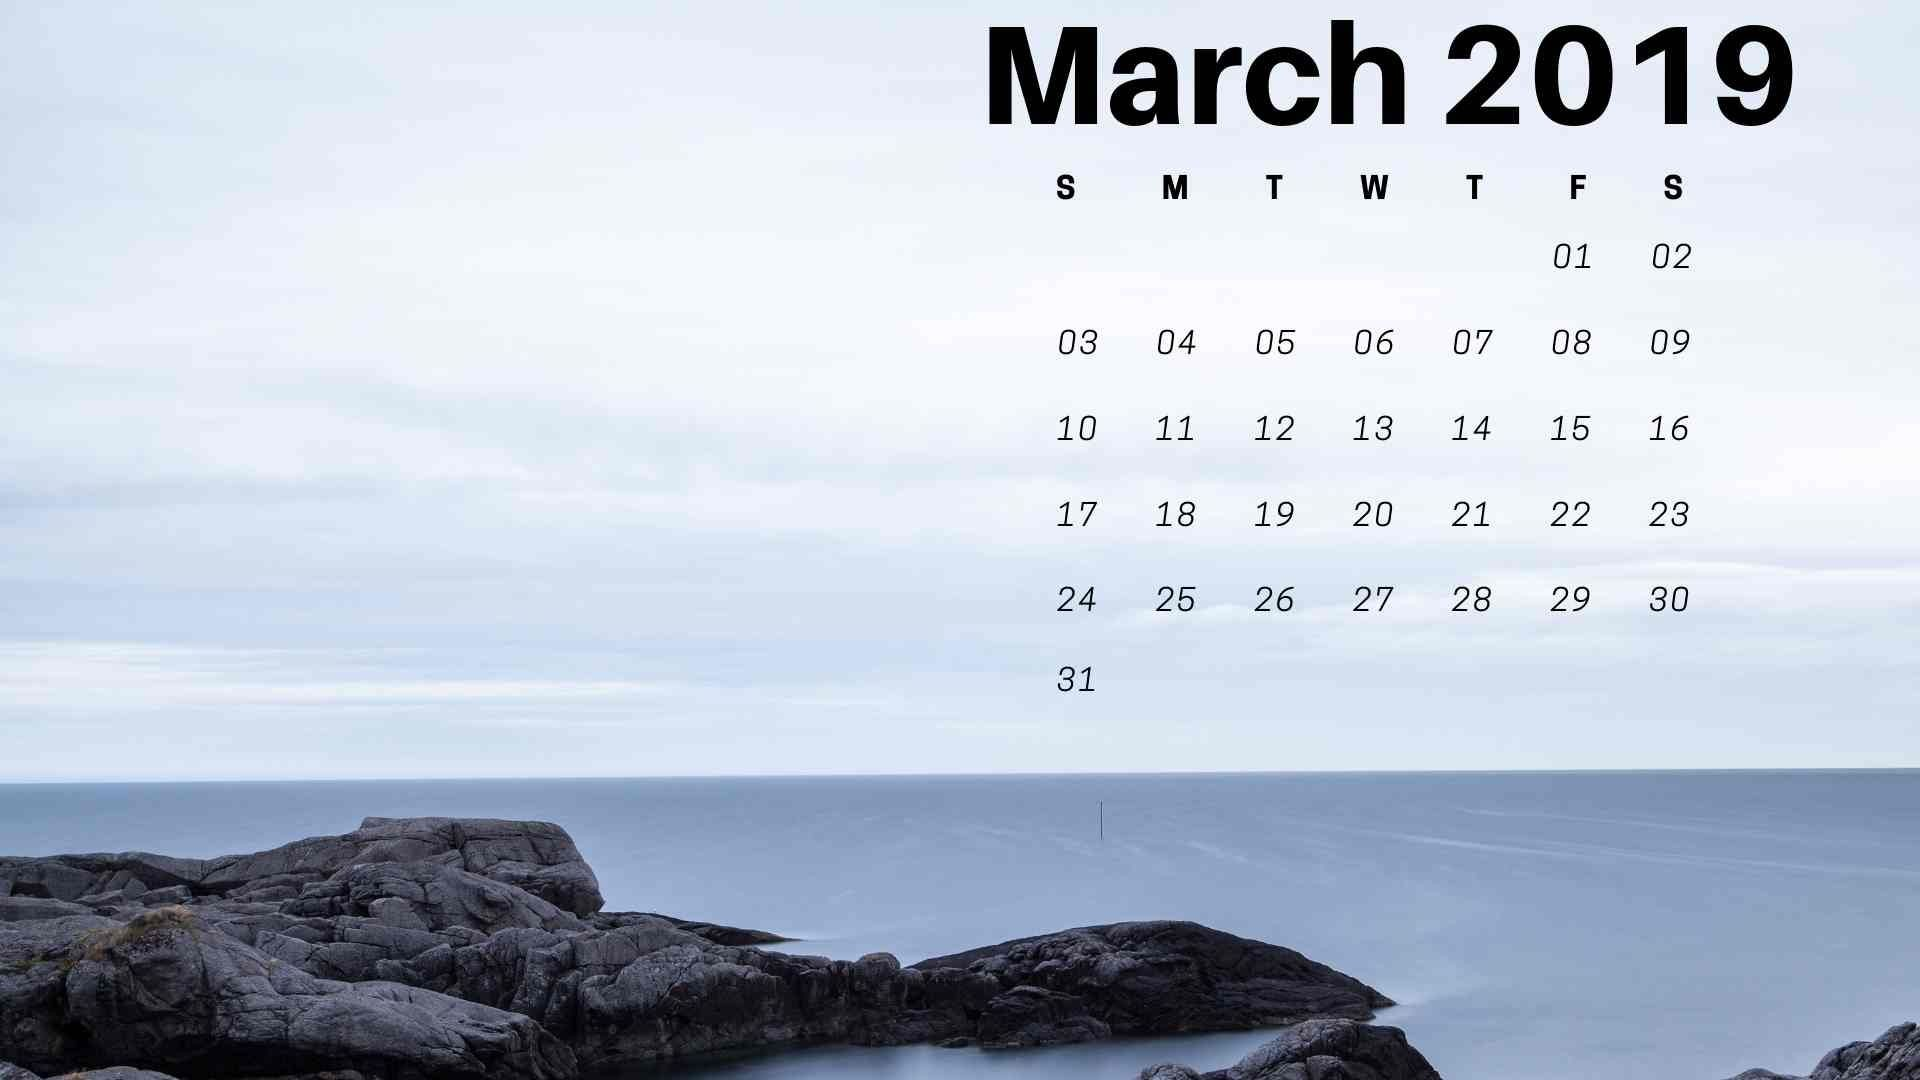 Empty Calendar March 2019 Más Recientemente Liberado March 2019 Calendar Wallpaper Desktop March Calendar Calenda2019 Of Empty Calendar March 2019 Más Recientemente Liberado 10 Stylish Free Printable Calendars for 2019